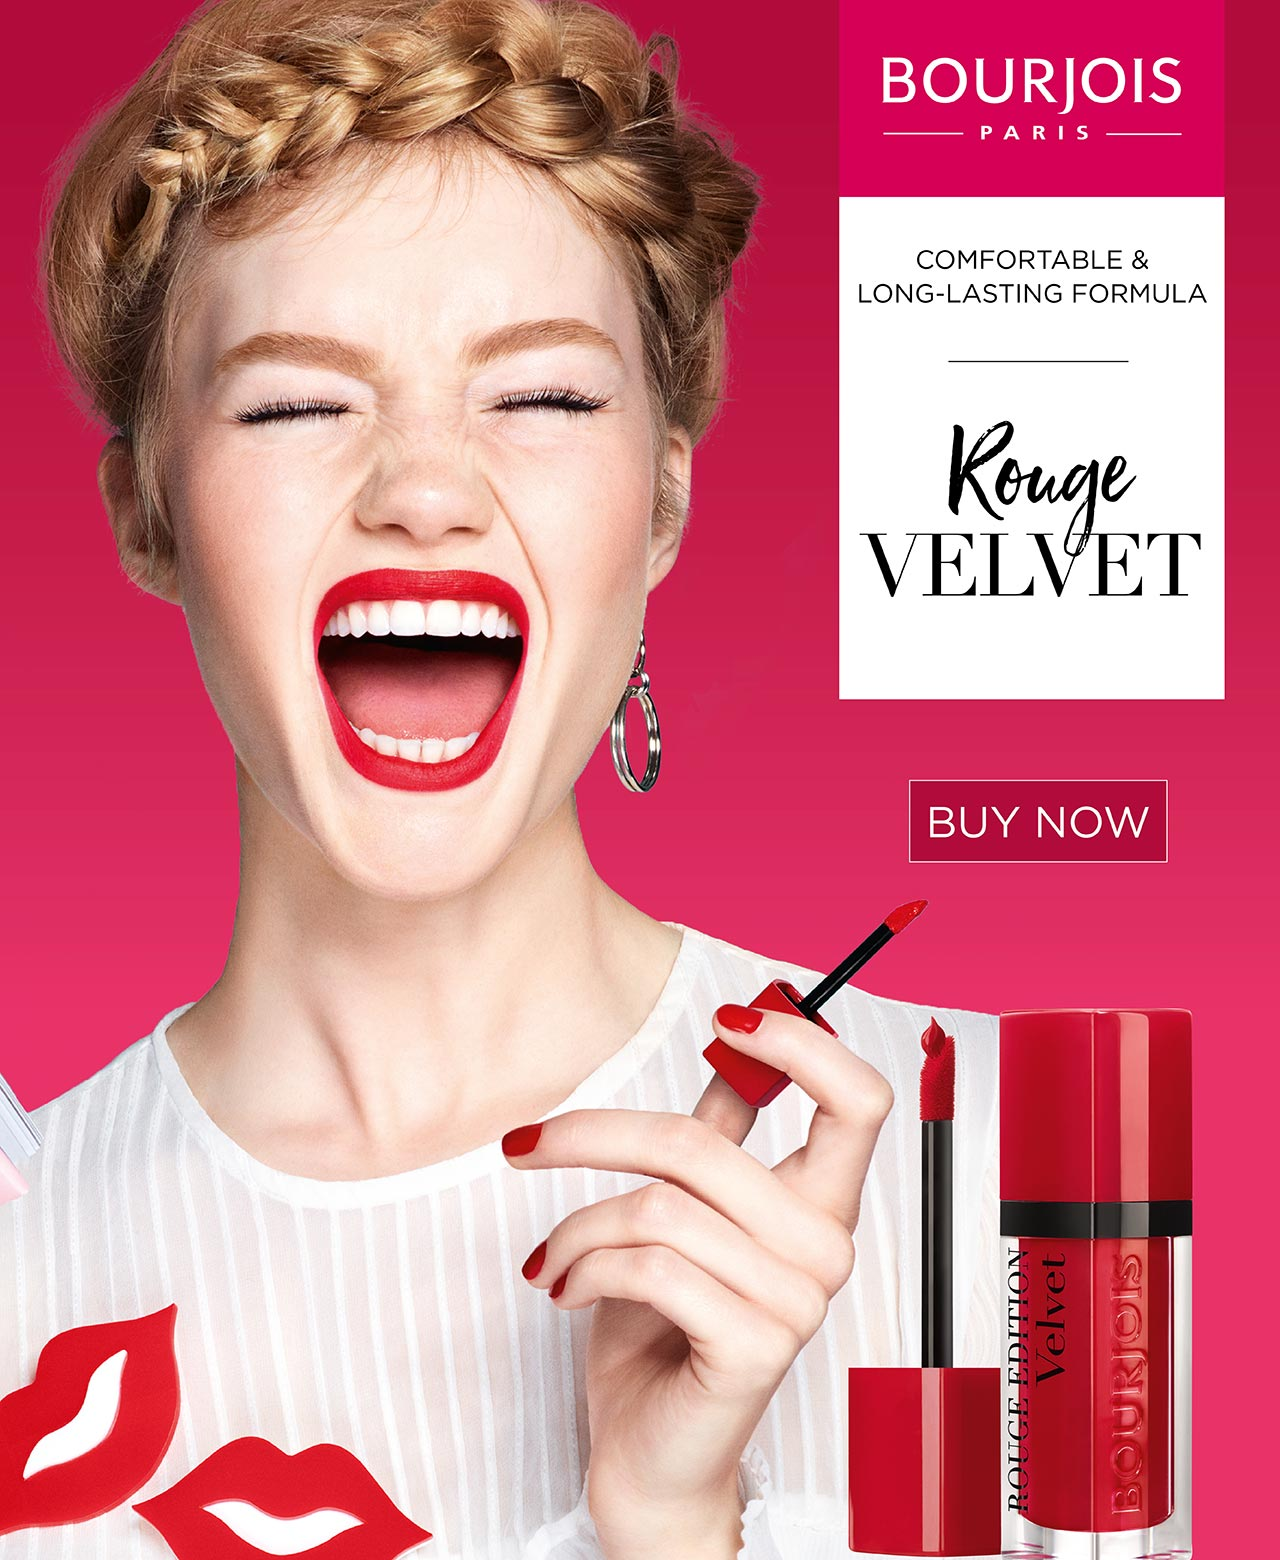 Bourjois Rouge Velvet Ultra-fashionable pout. Matte finish that lasts. Comfortable and long-lasting formula.